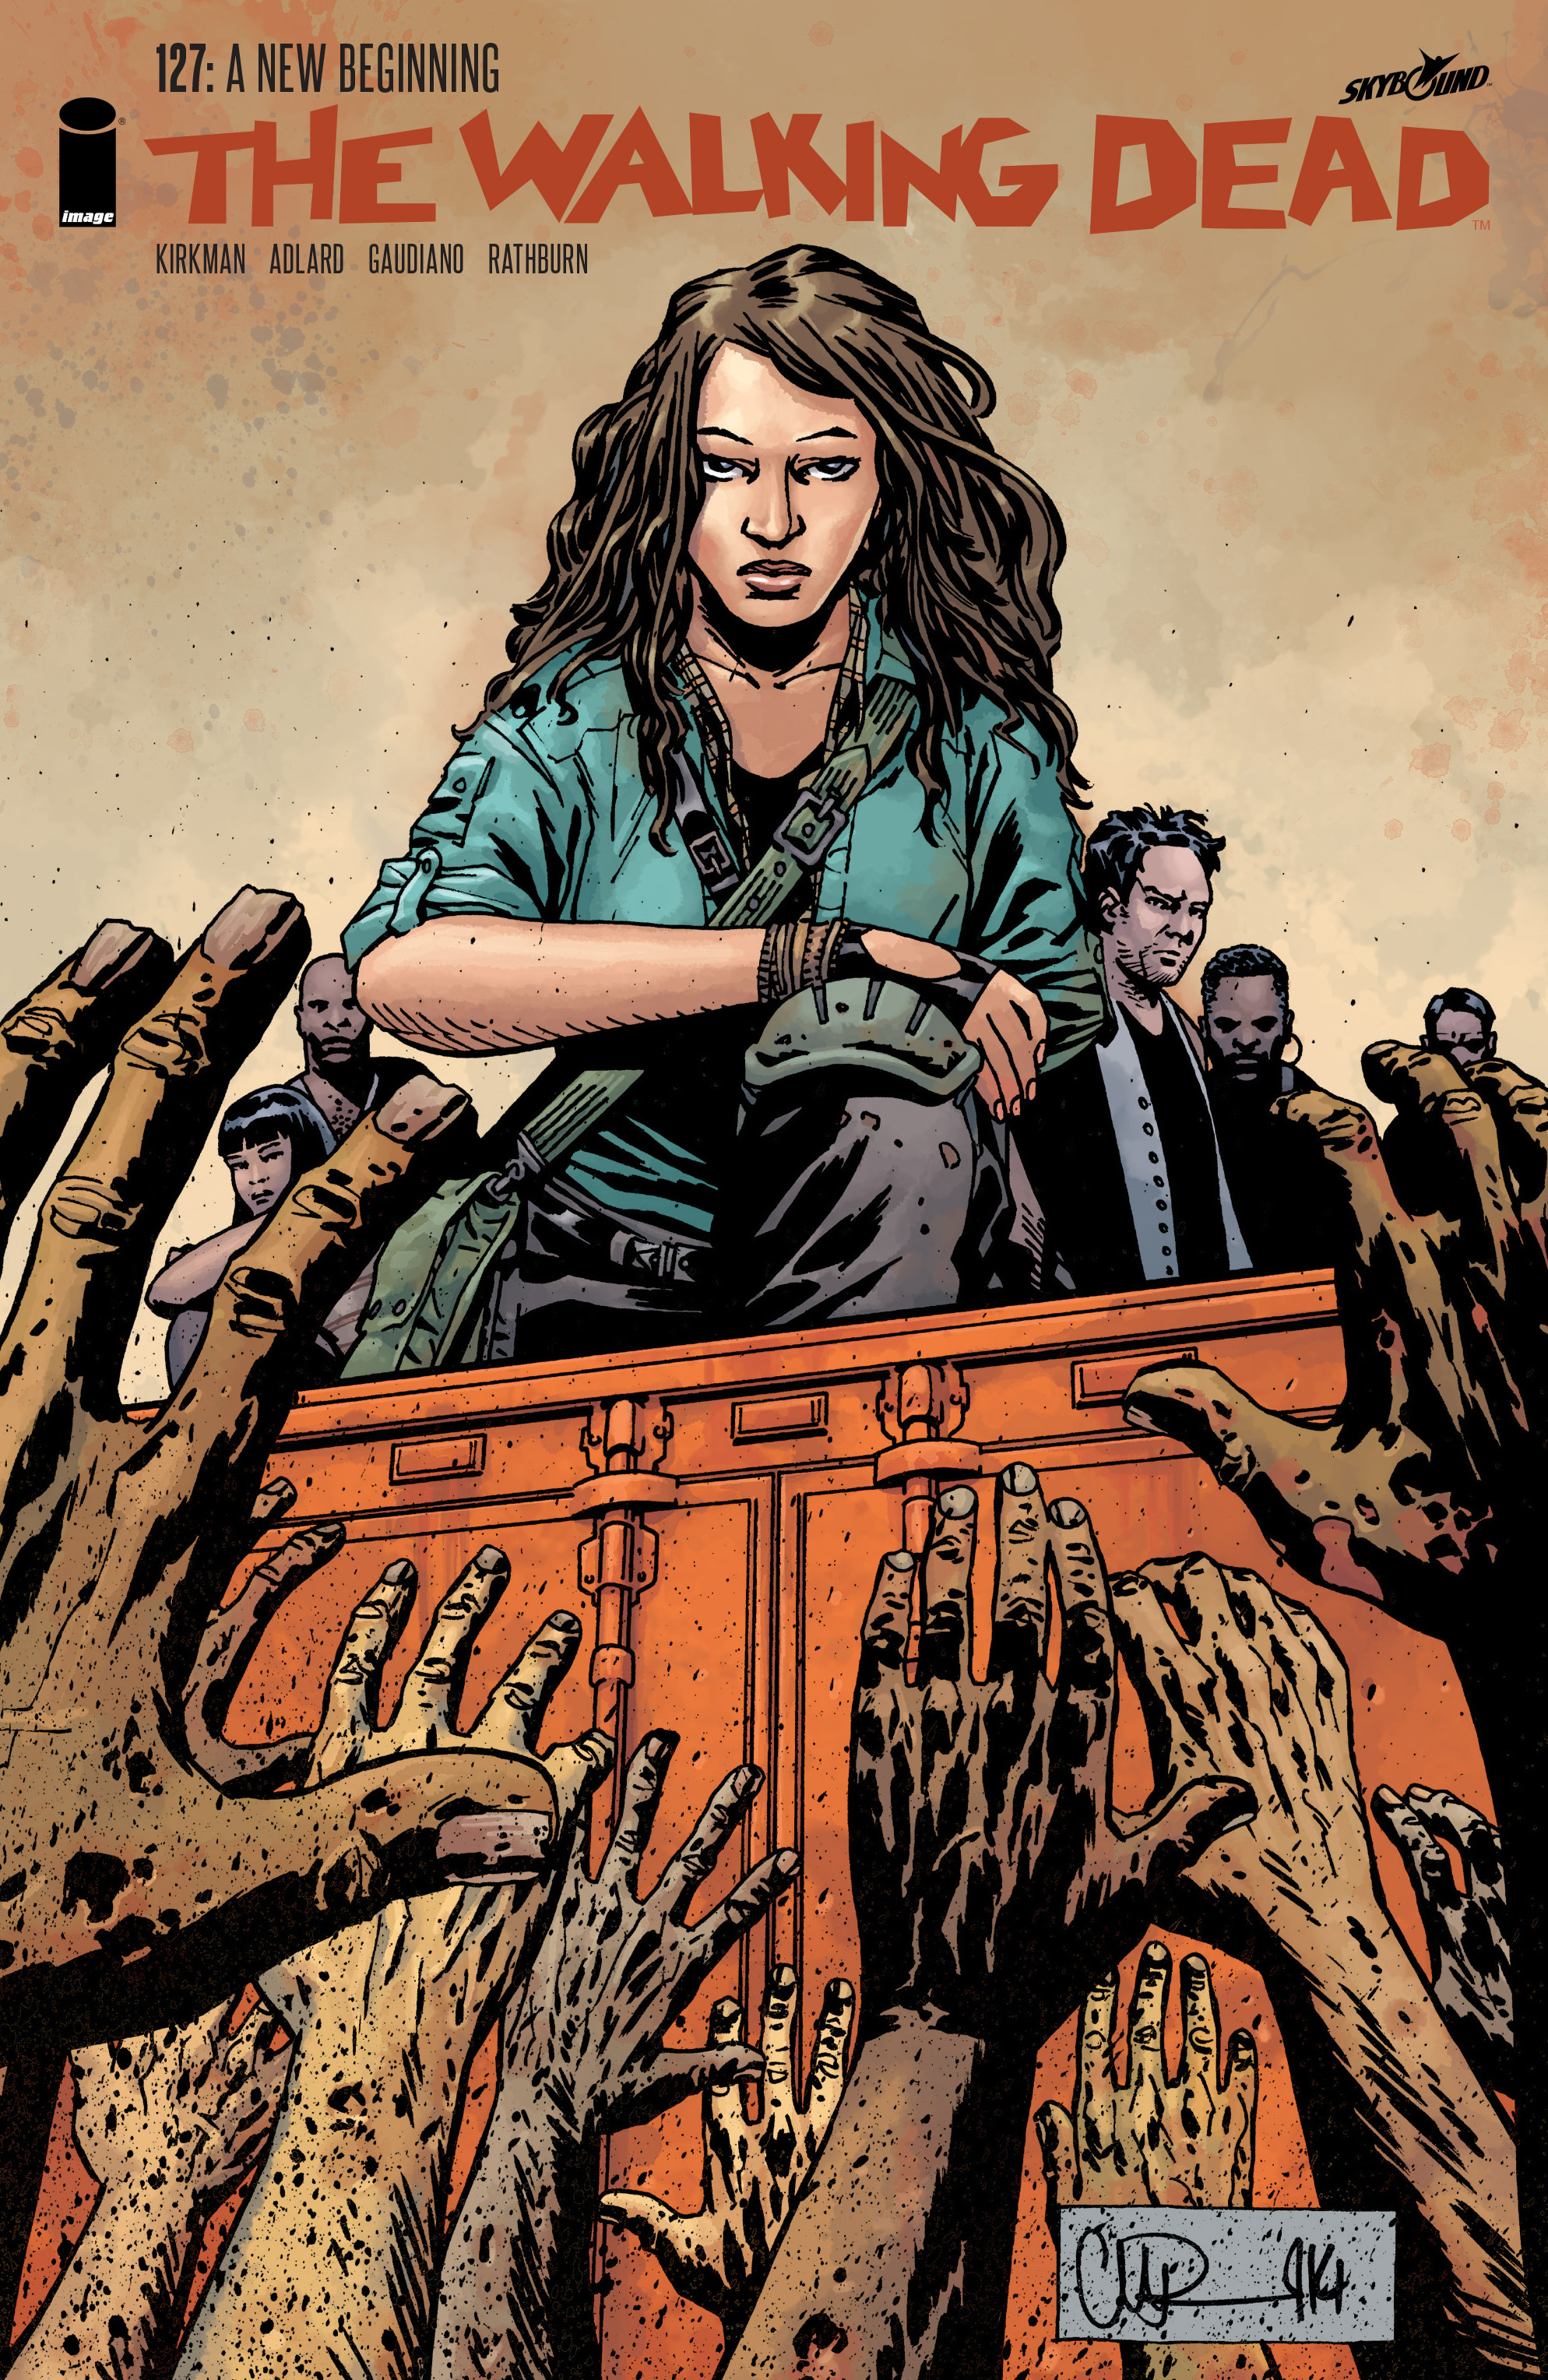 The Walking Dead 127 Page 1